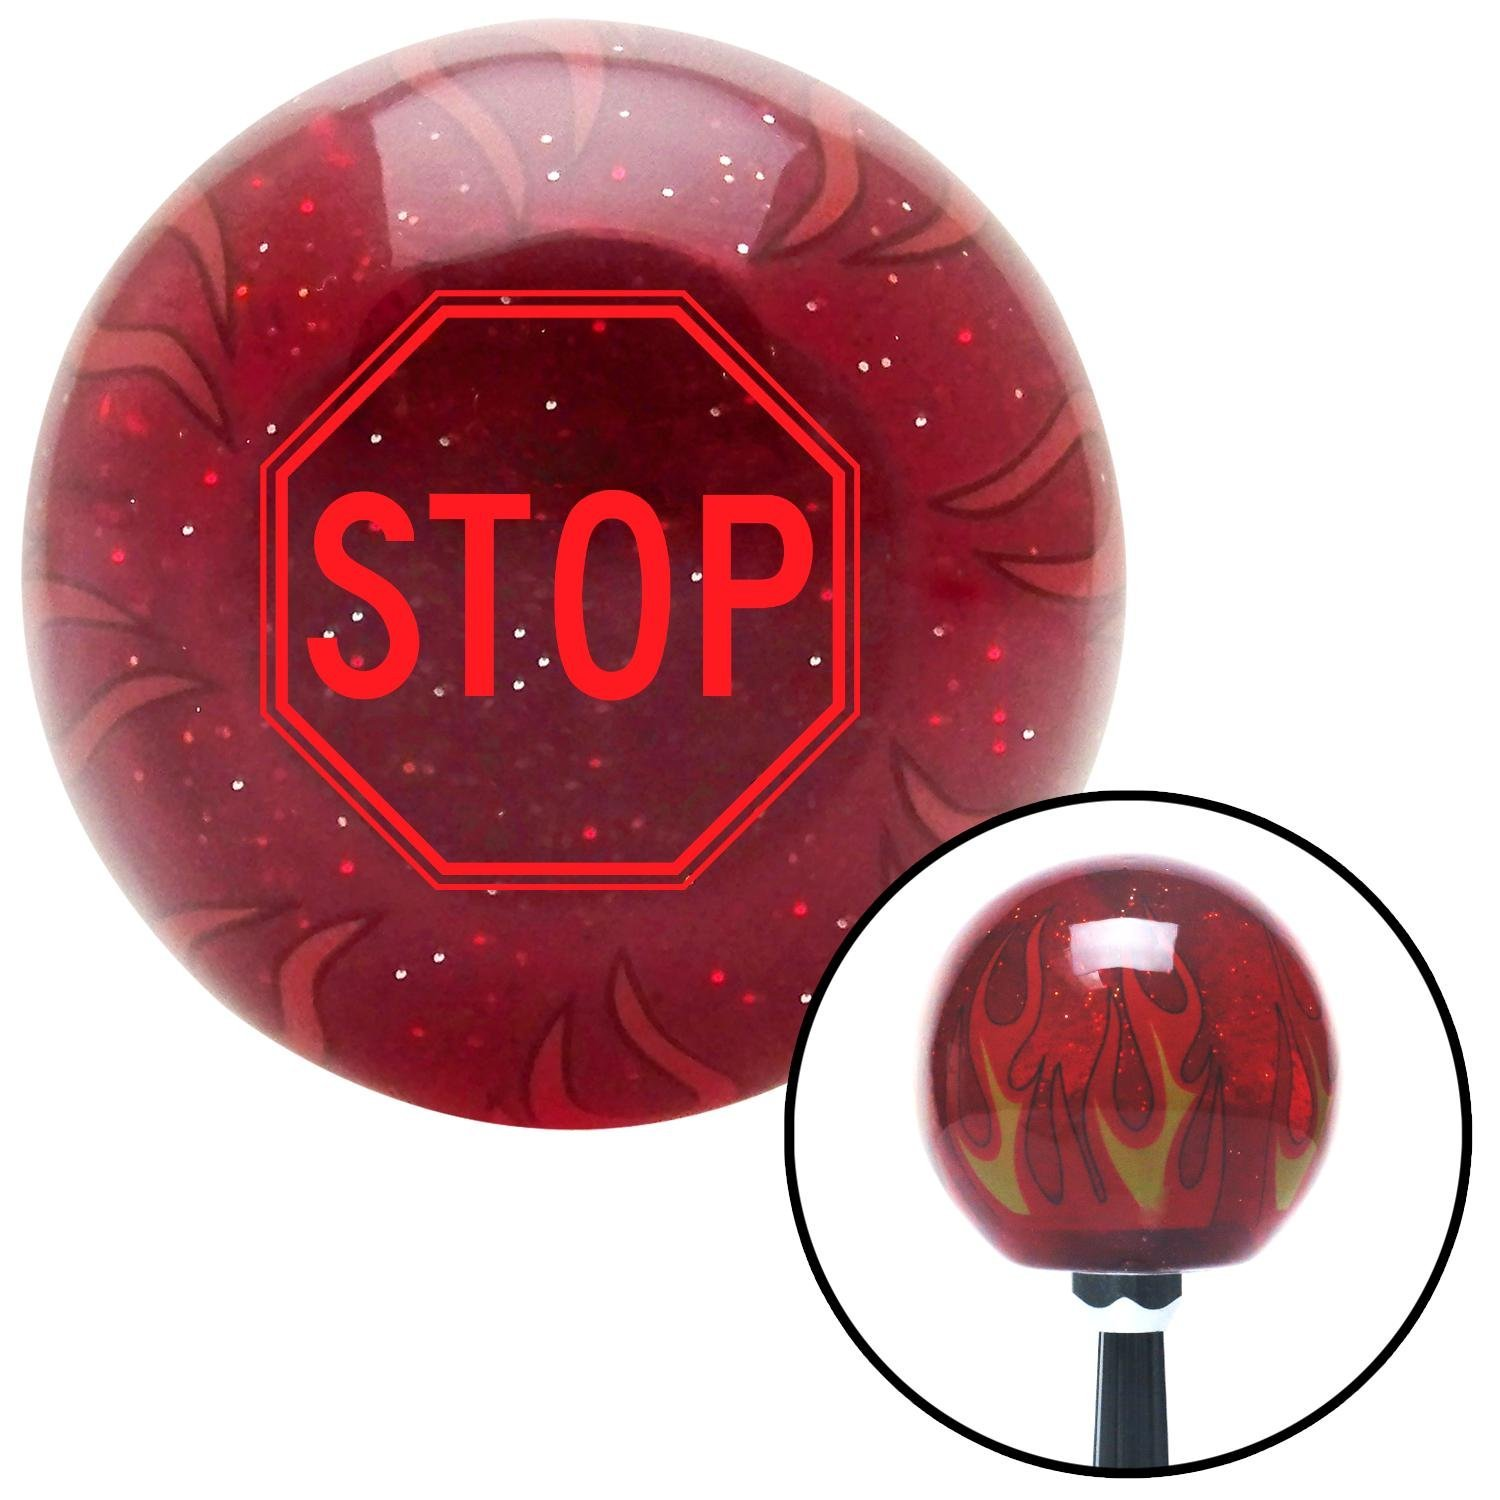 American Shifter 239873 Red Flame Metal Flake Shift Knob with M16 x 1.5 Insert Red Stop Sign